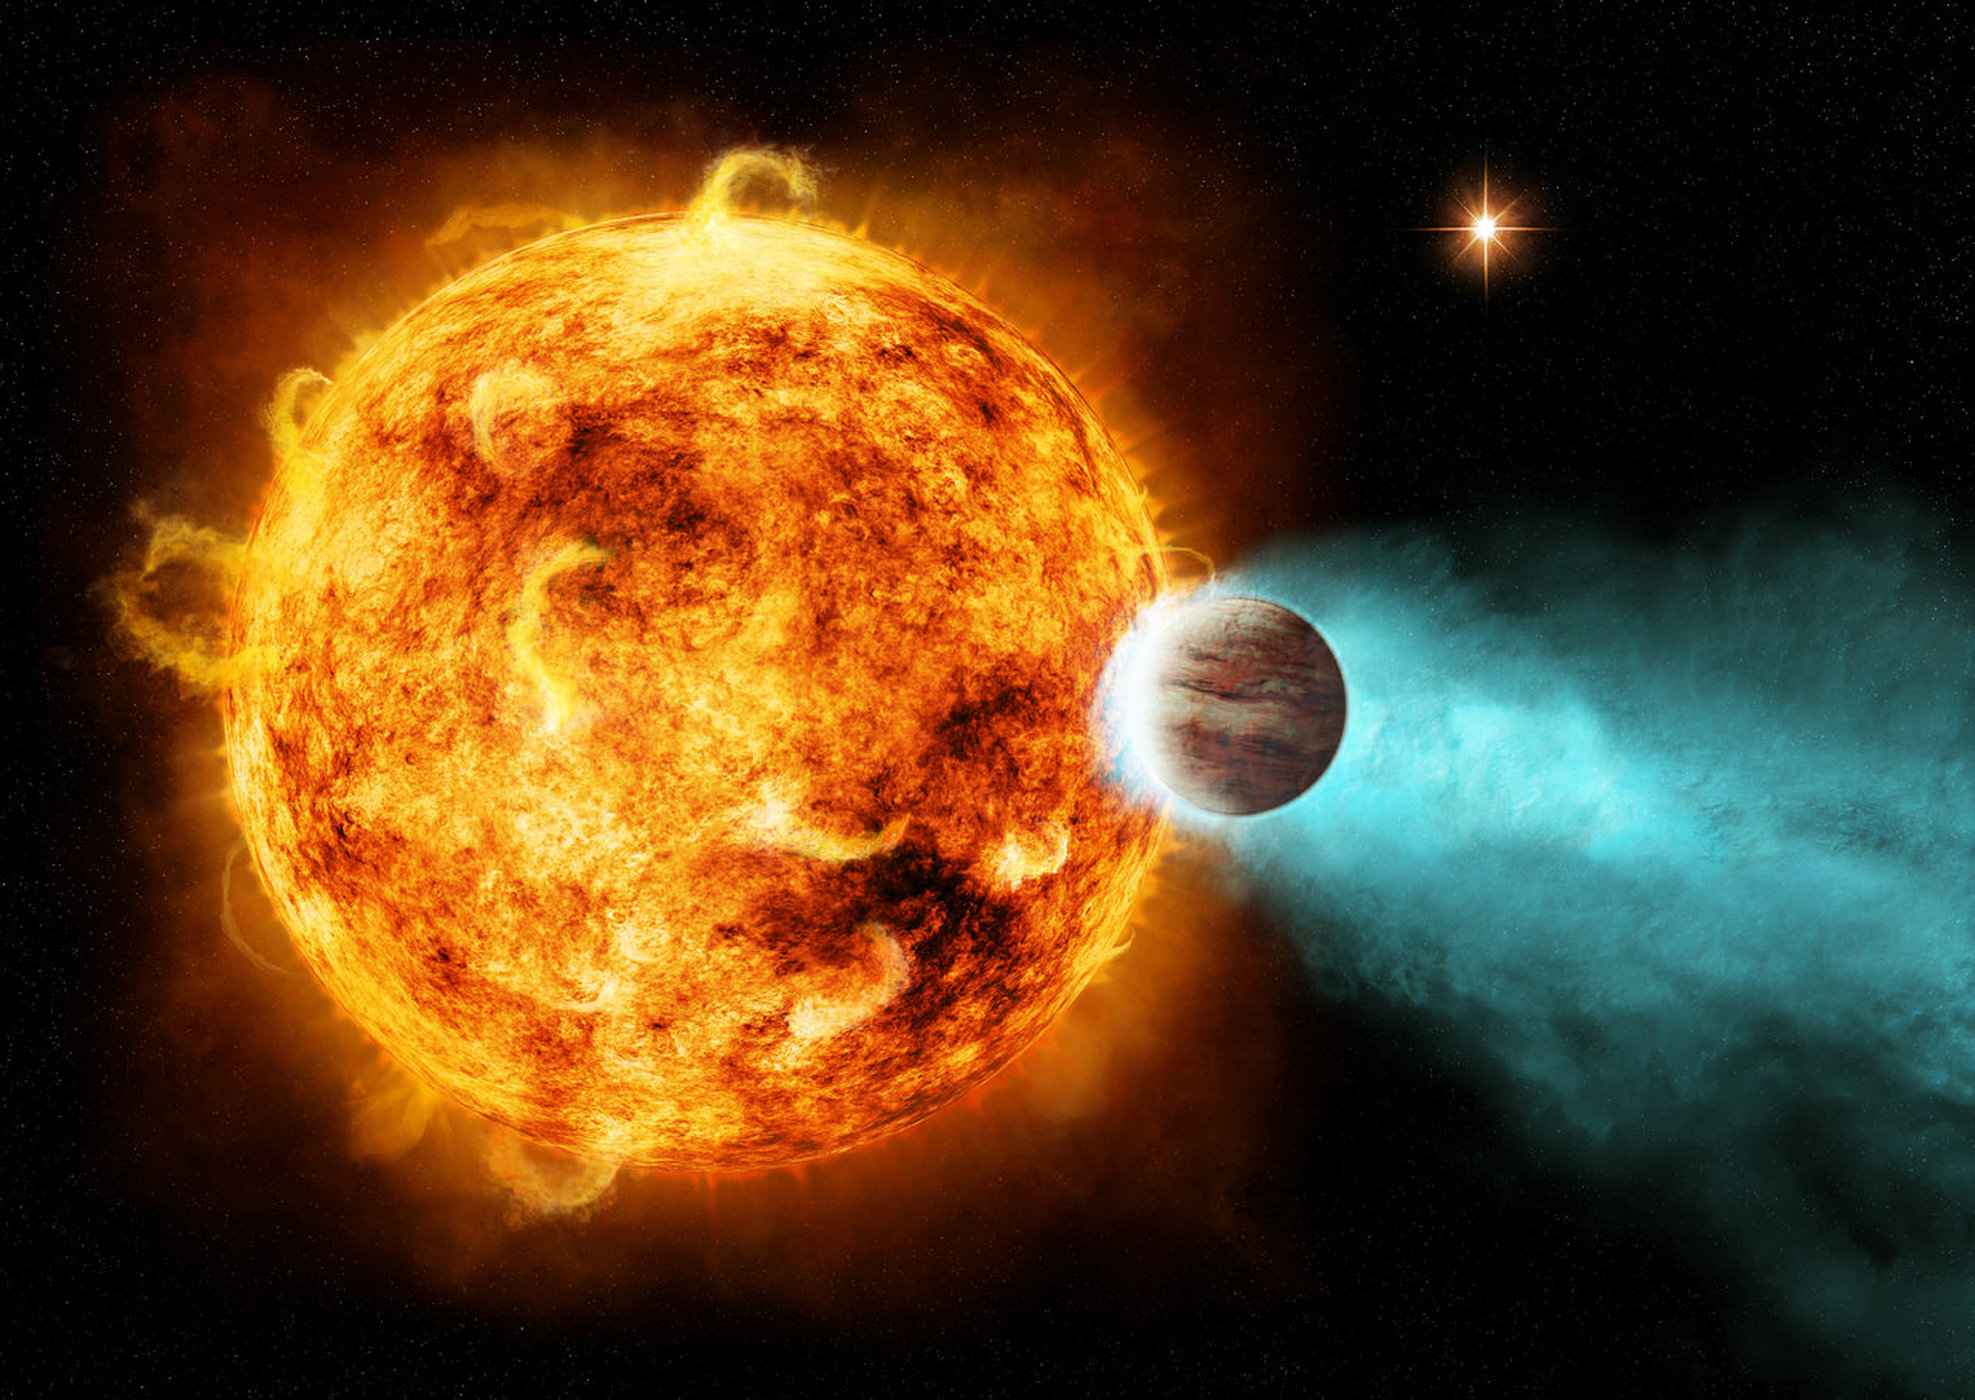 Artist's depiction of a so-called hot Jupiter orbiting its planet star.